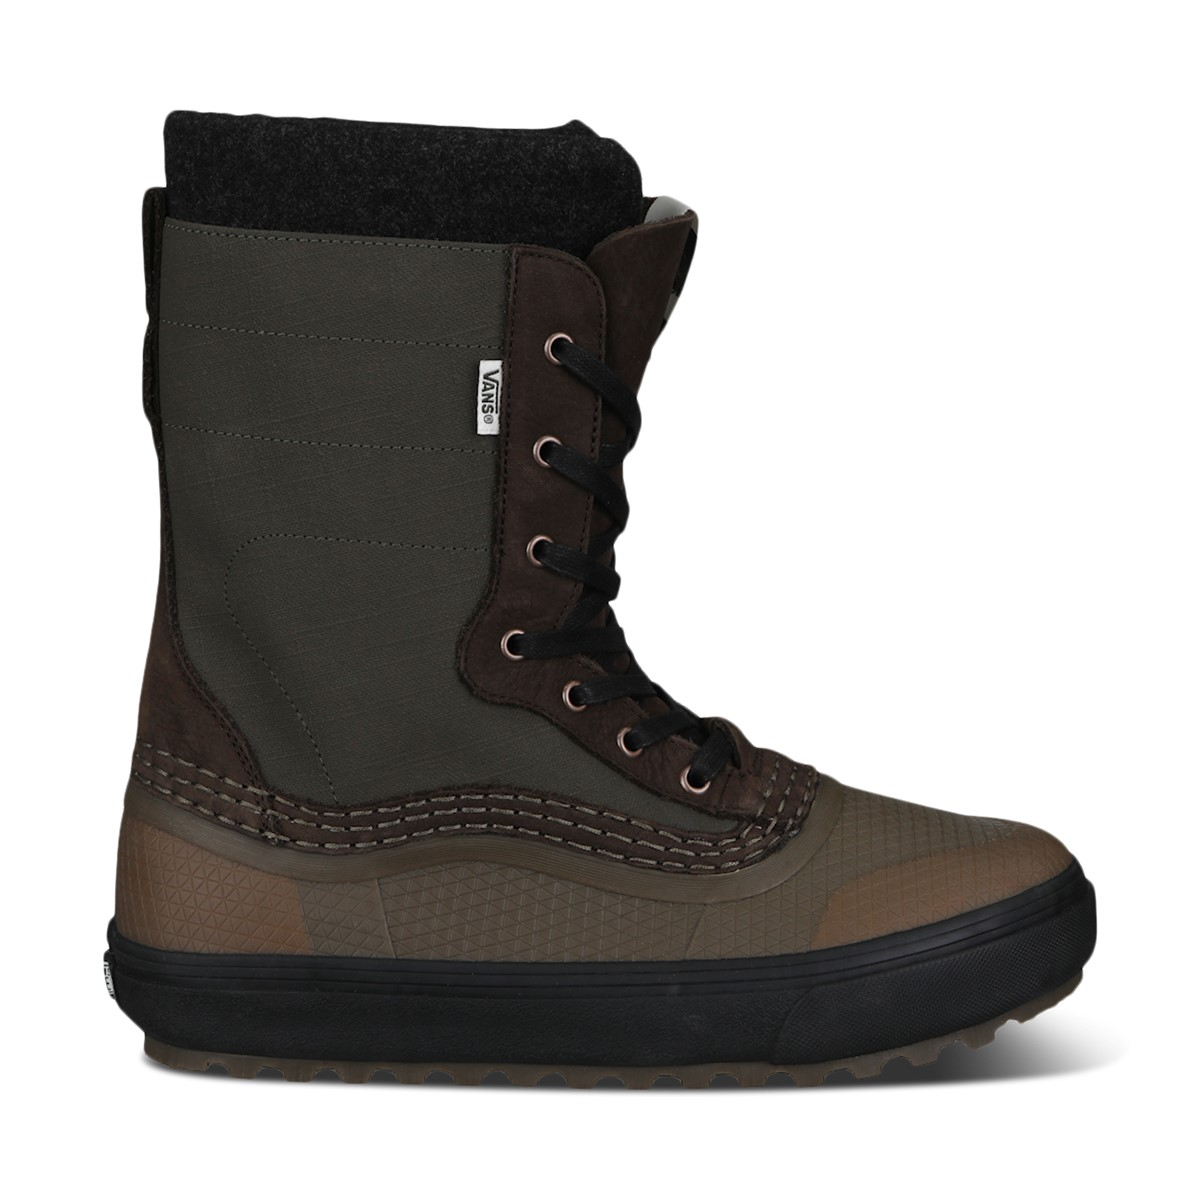 Men's Standard Zip MTE Boots in Brown